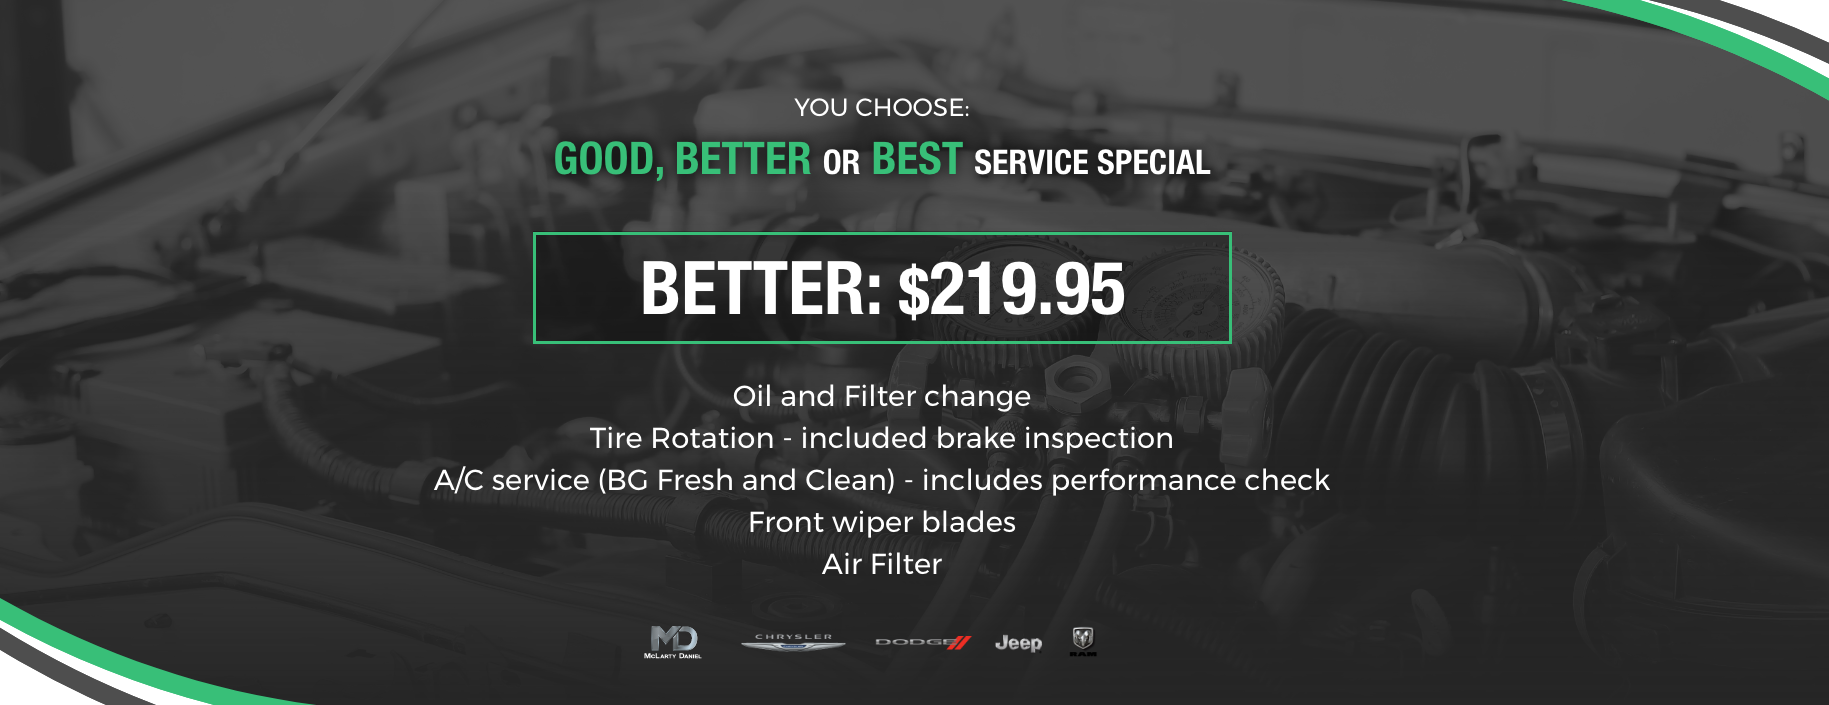 You Choose Service Special: Better